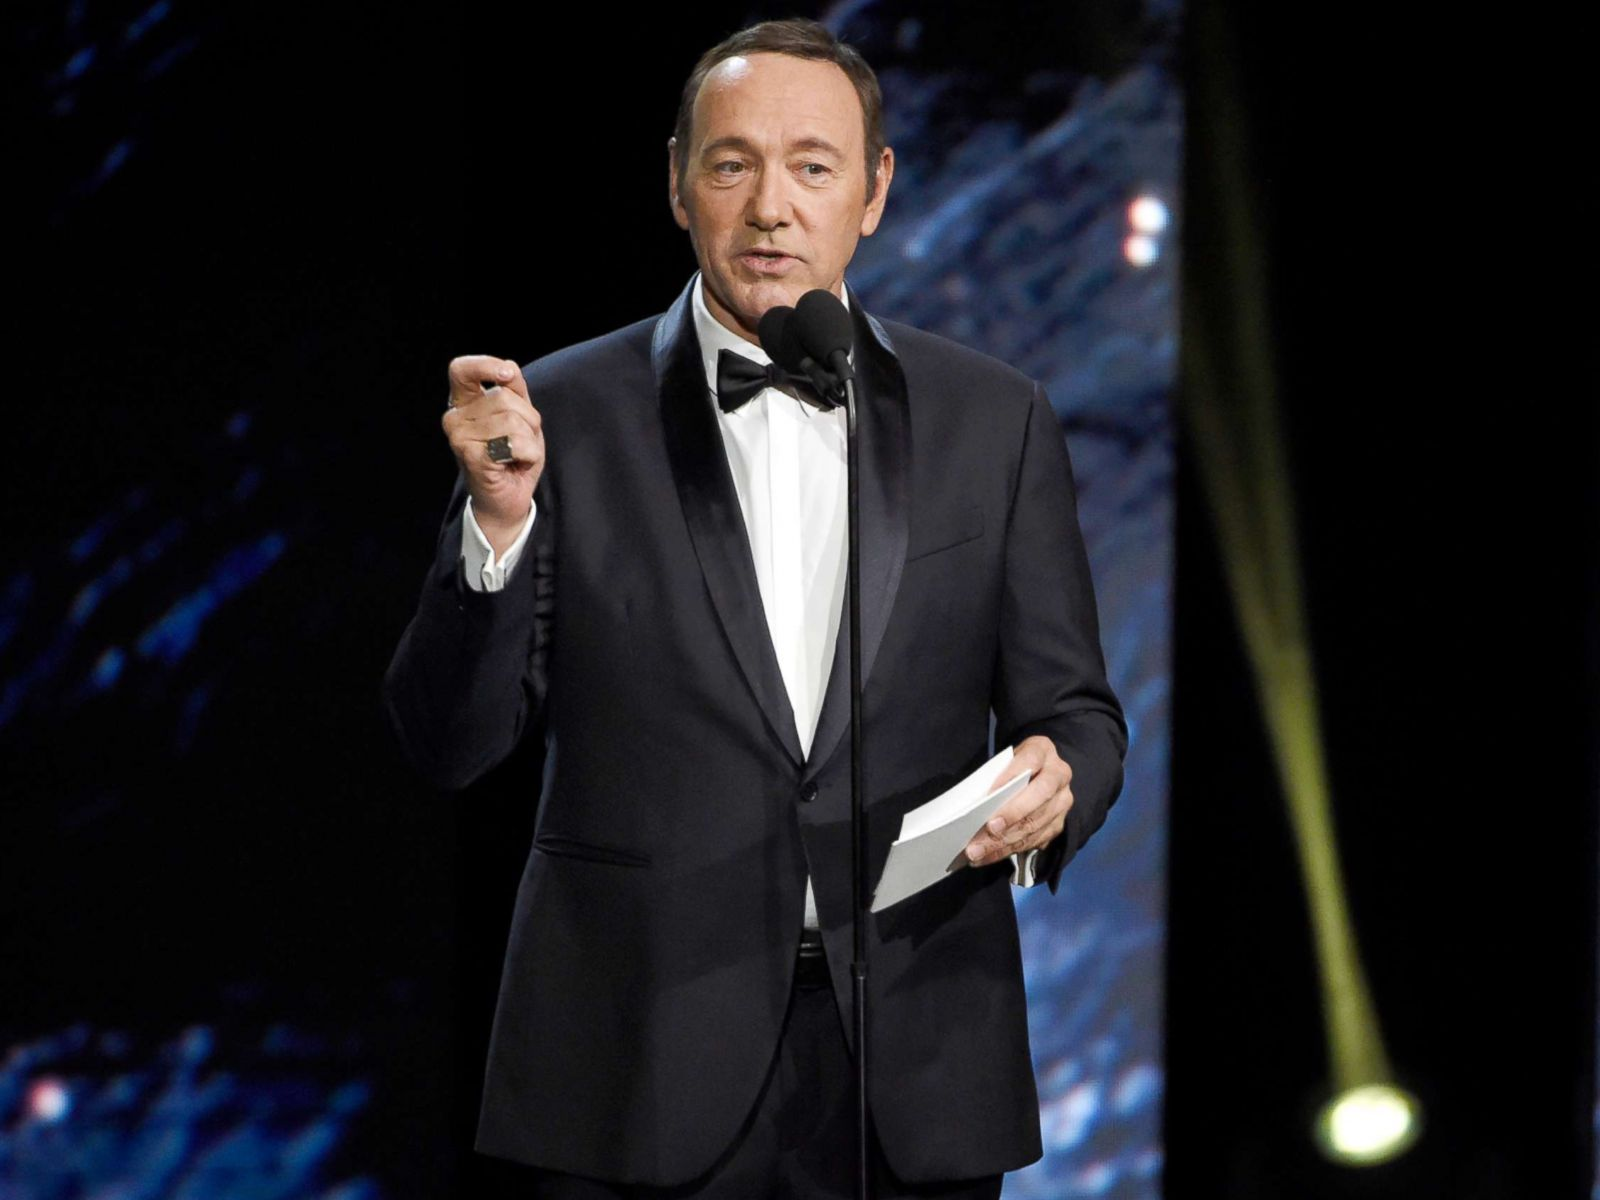 The rise and fall of Kevin Spacey: A timeline of sexual assault